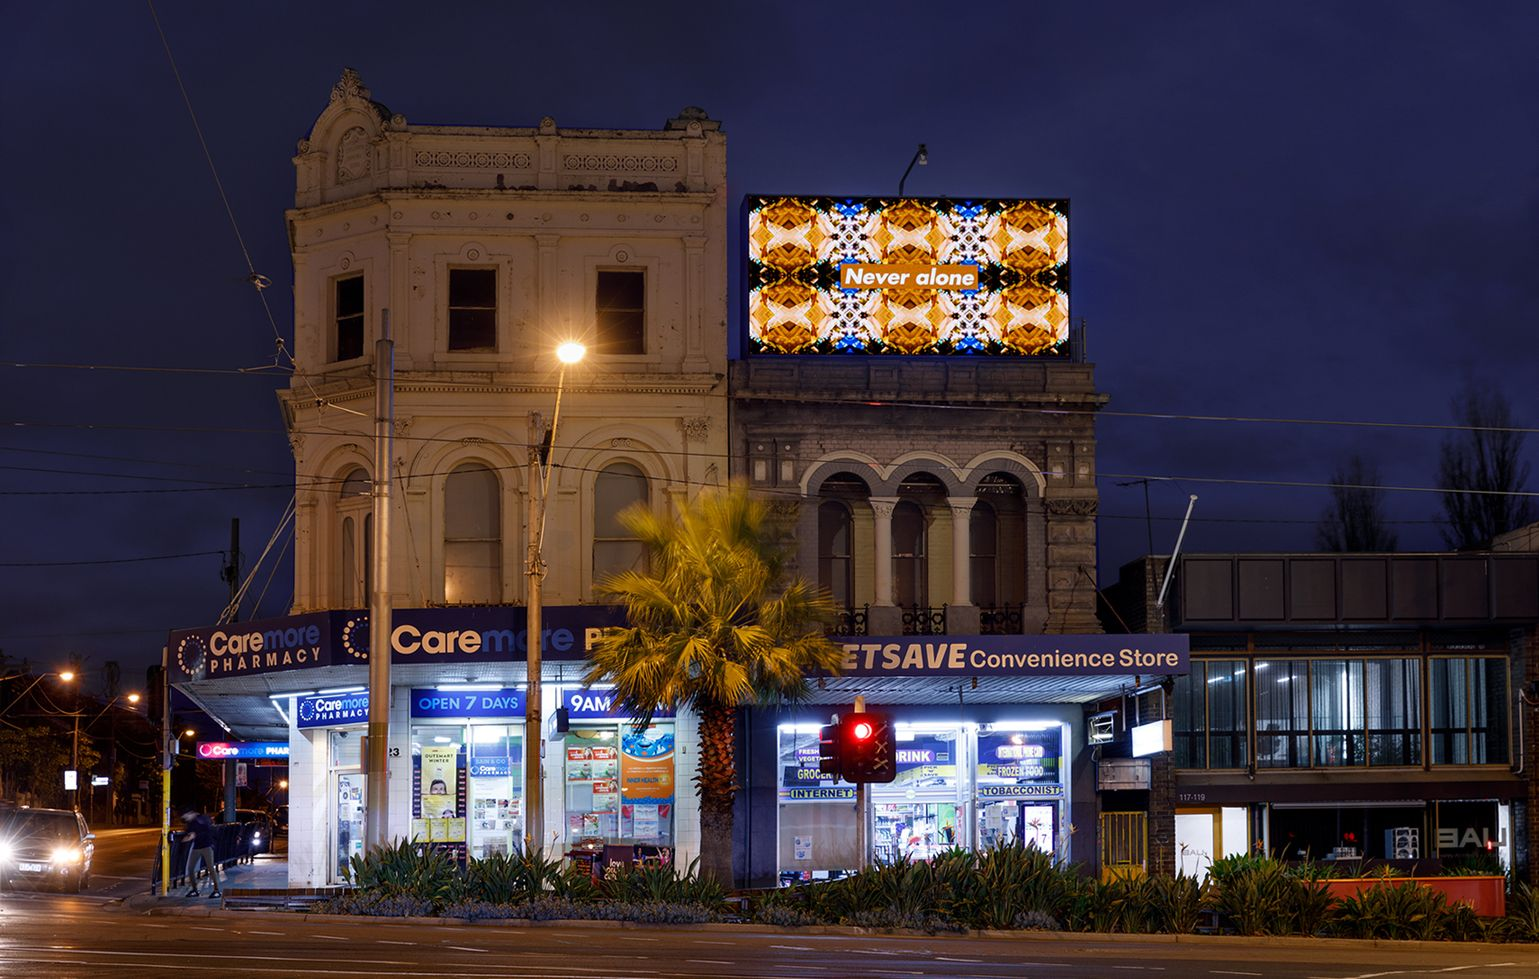 Kent Morris, Never alone 2020, digital billboard, installation image, intersection of Fitzroy Street, Canterbury Road and Grey Street, St Kilda, Melbourne. Commissioned by ACCA. Courtesy the artist. Photograph: Andrew Curtis